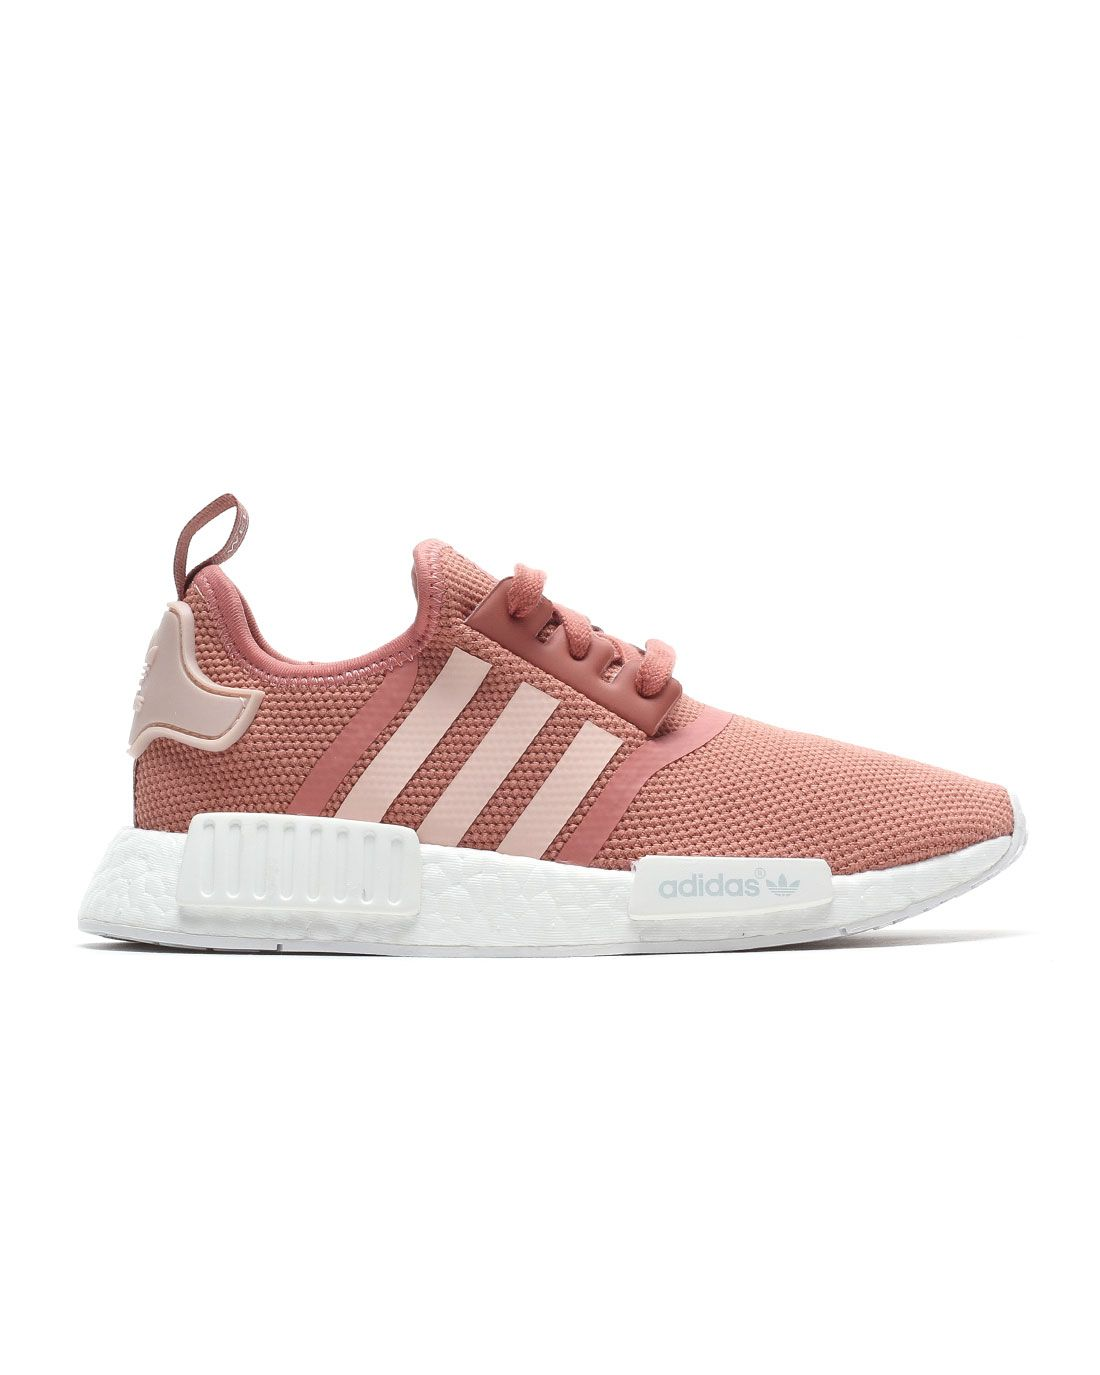 separation shoes d920b 79ffb adidas NMD_R1 W raw pink Schuhe Shop for sneakers at the ...